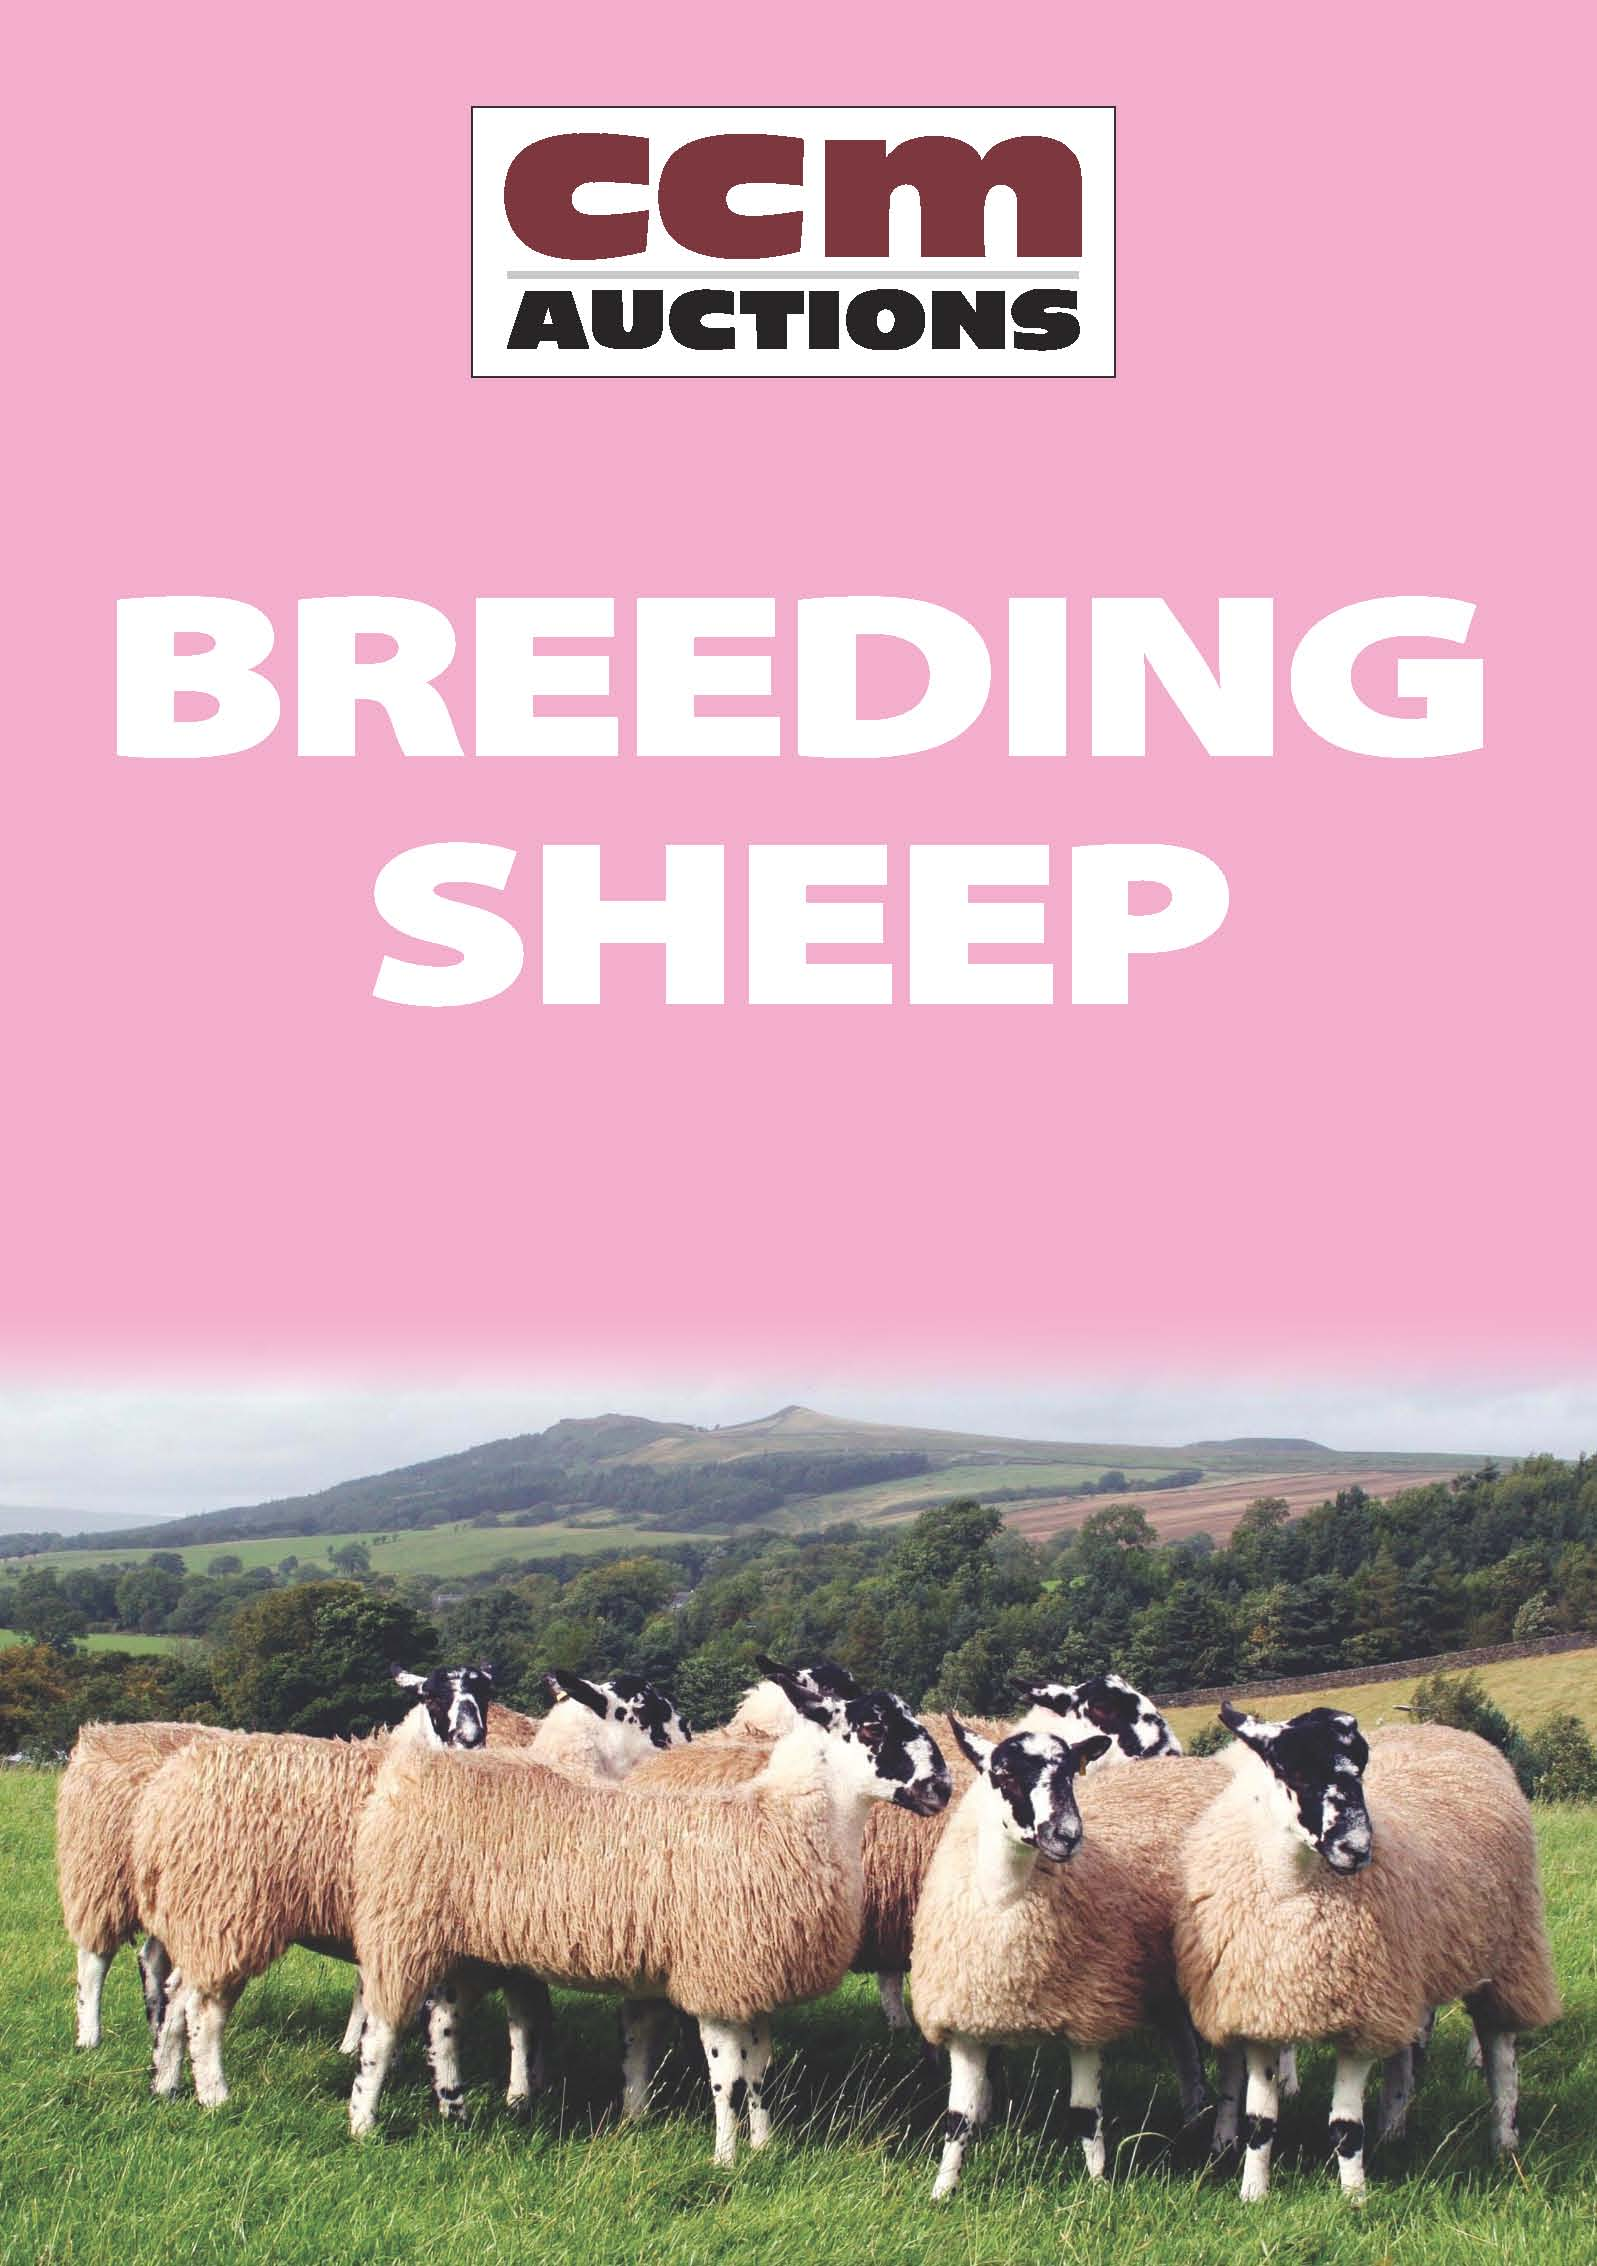 BREEDING SHEEP - TUESDAY 18TH SEPTEMBER 2018